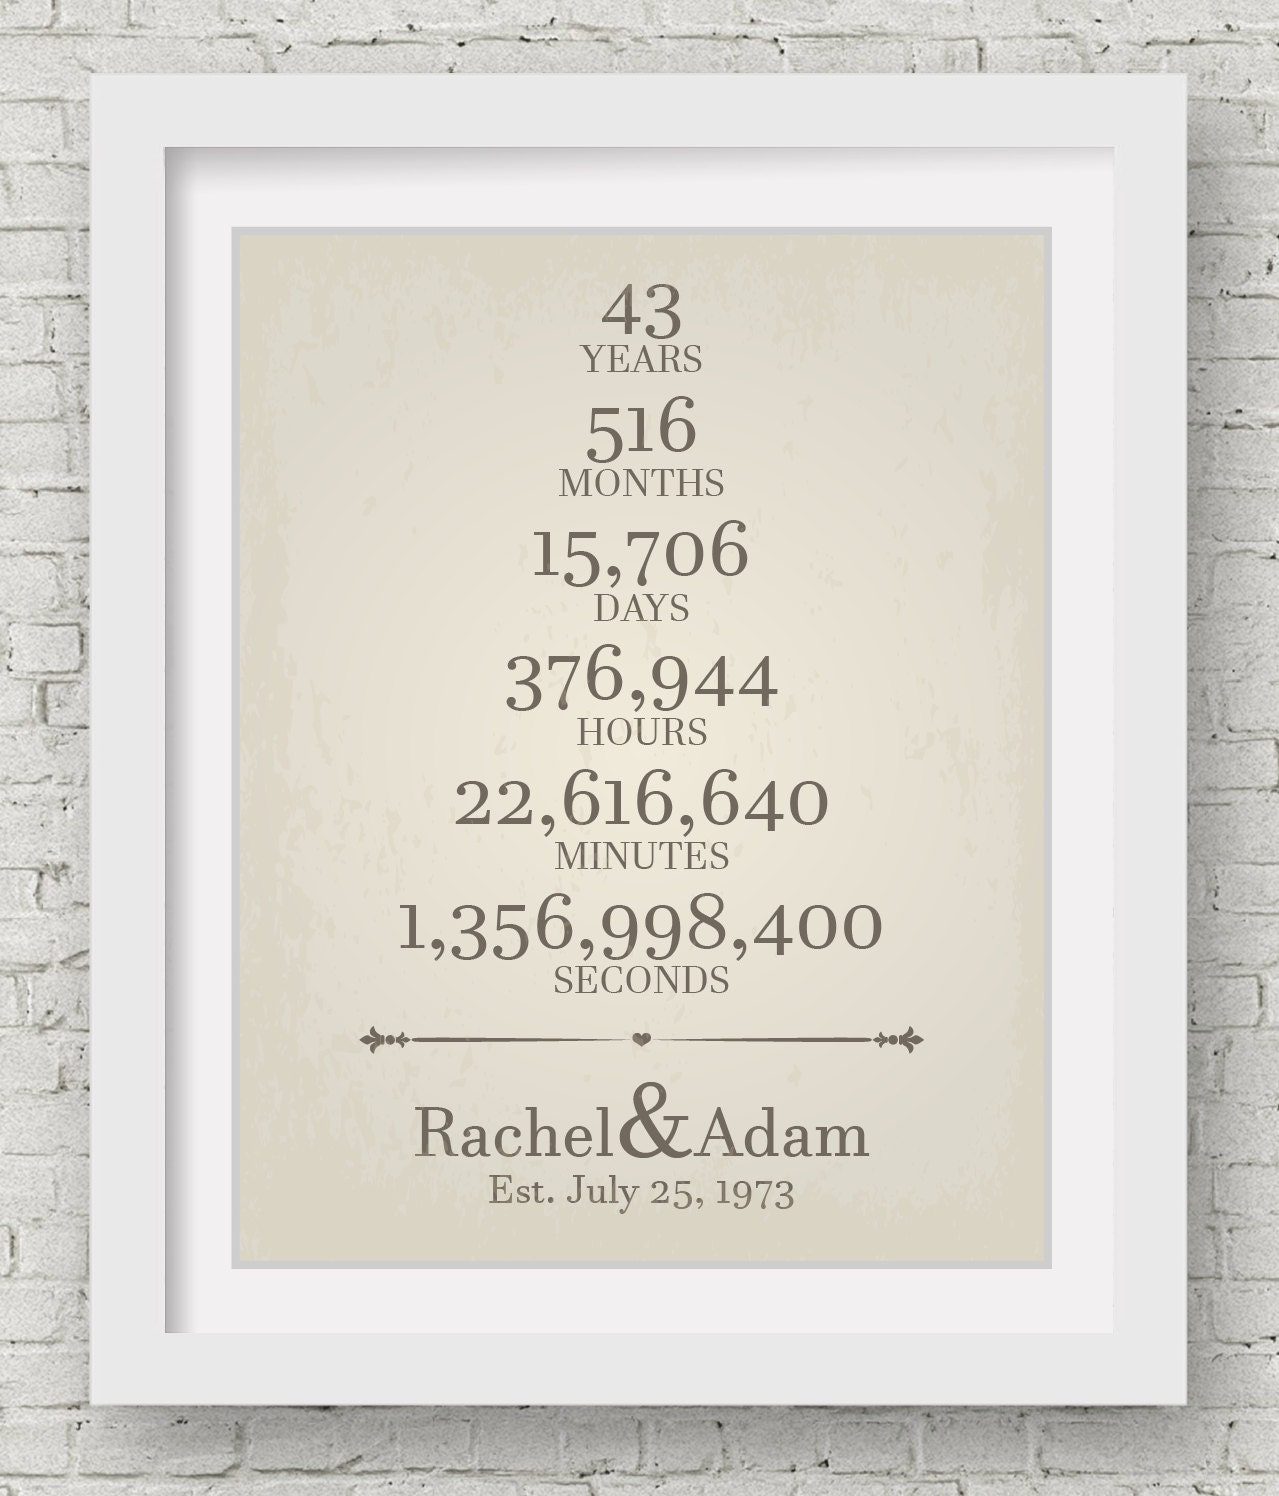 Wedding Anniversary Gifts 43rd wedding anniversary gift for parents ...